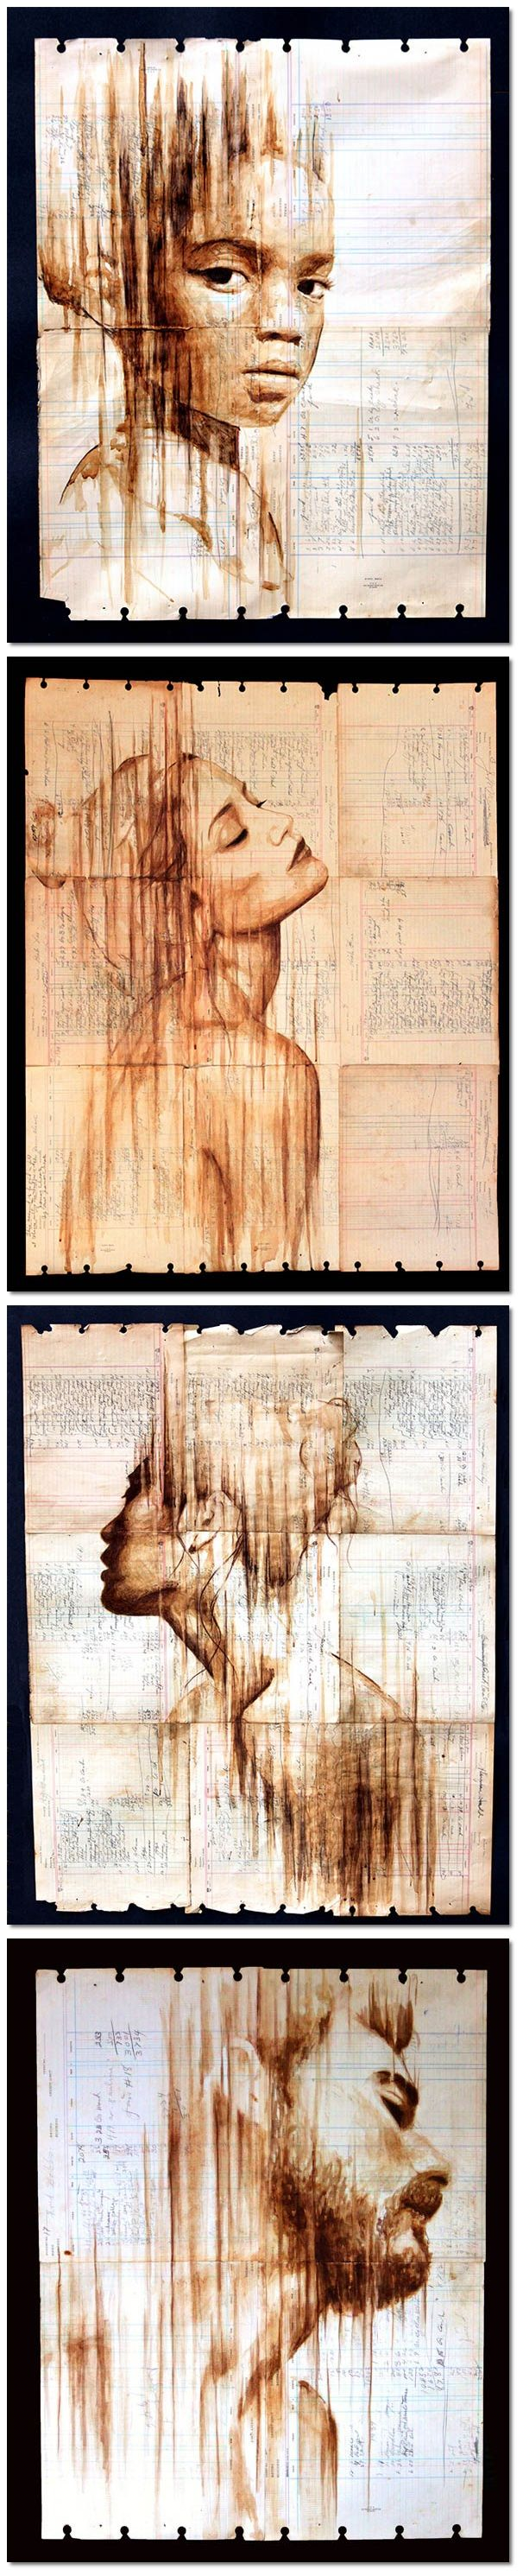 Food Art_Portraits Painted With Coffee on Antique Ledger Paper